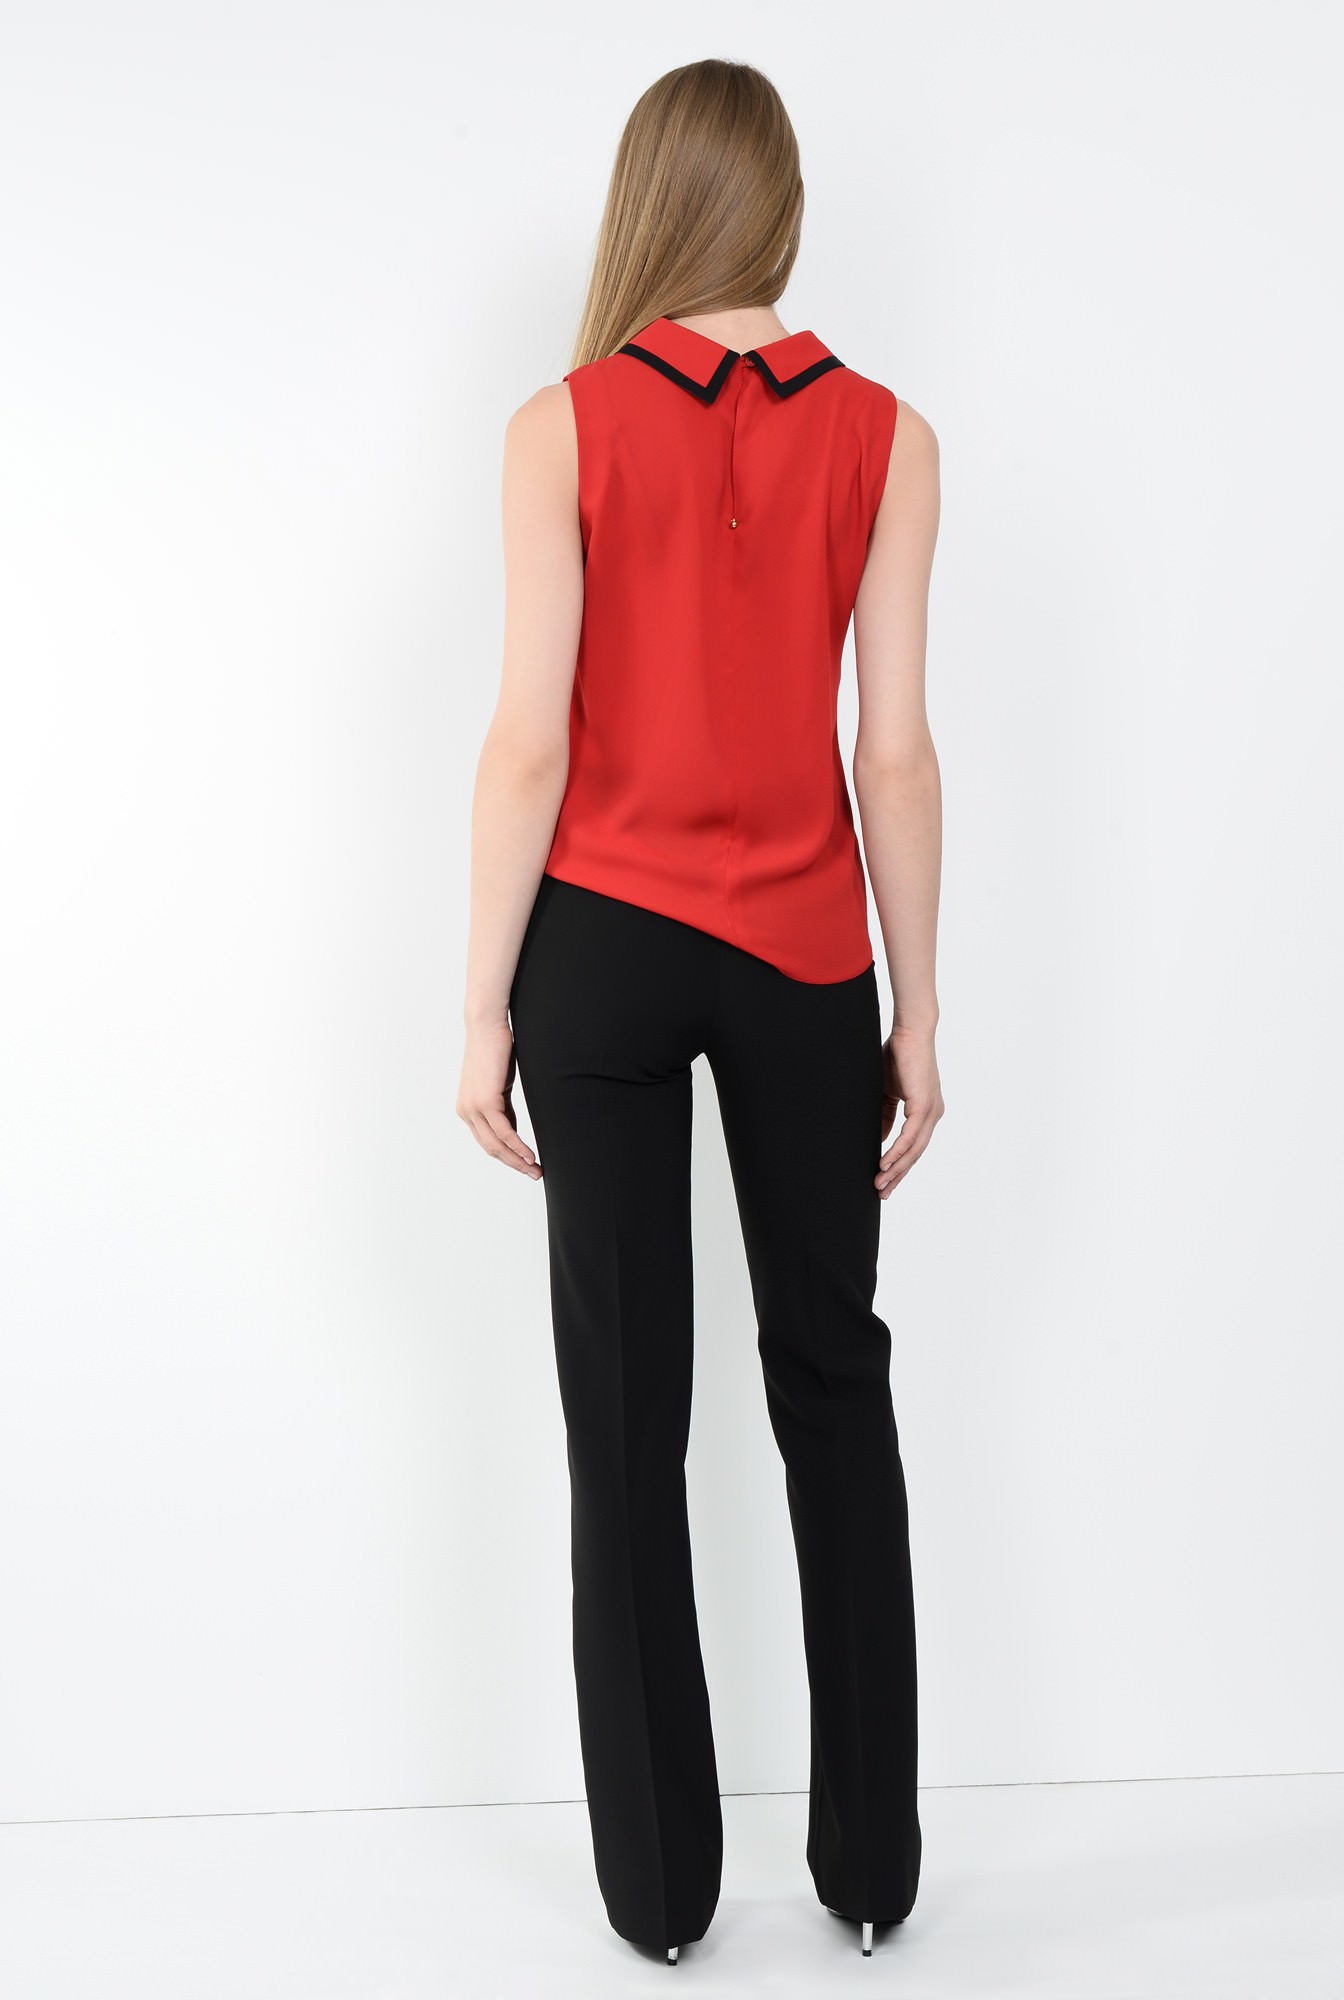 1 - BLUZA OFFICE BL 107-ROSU